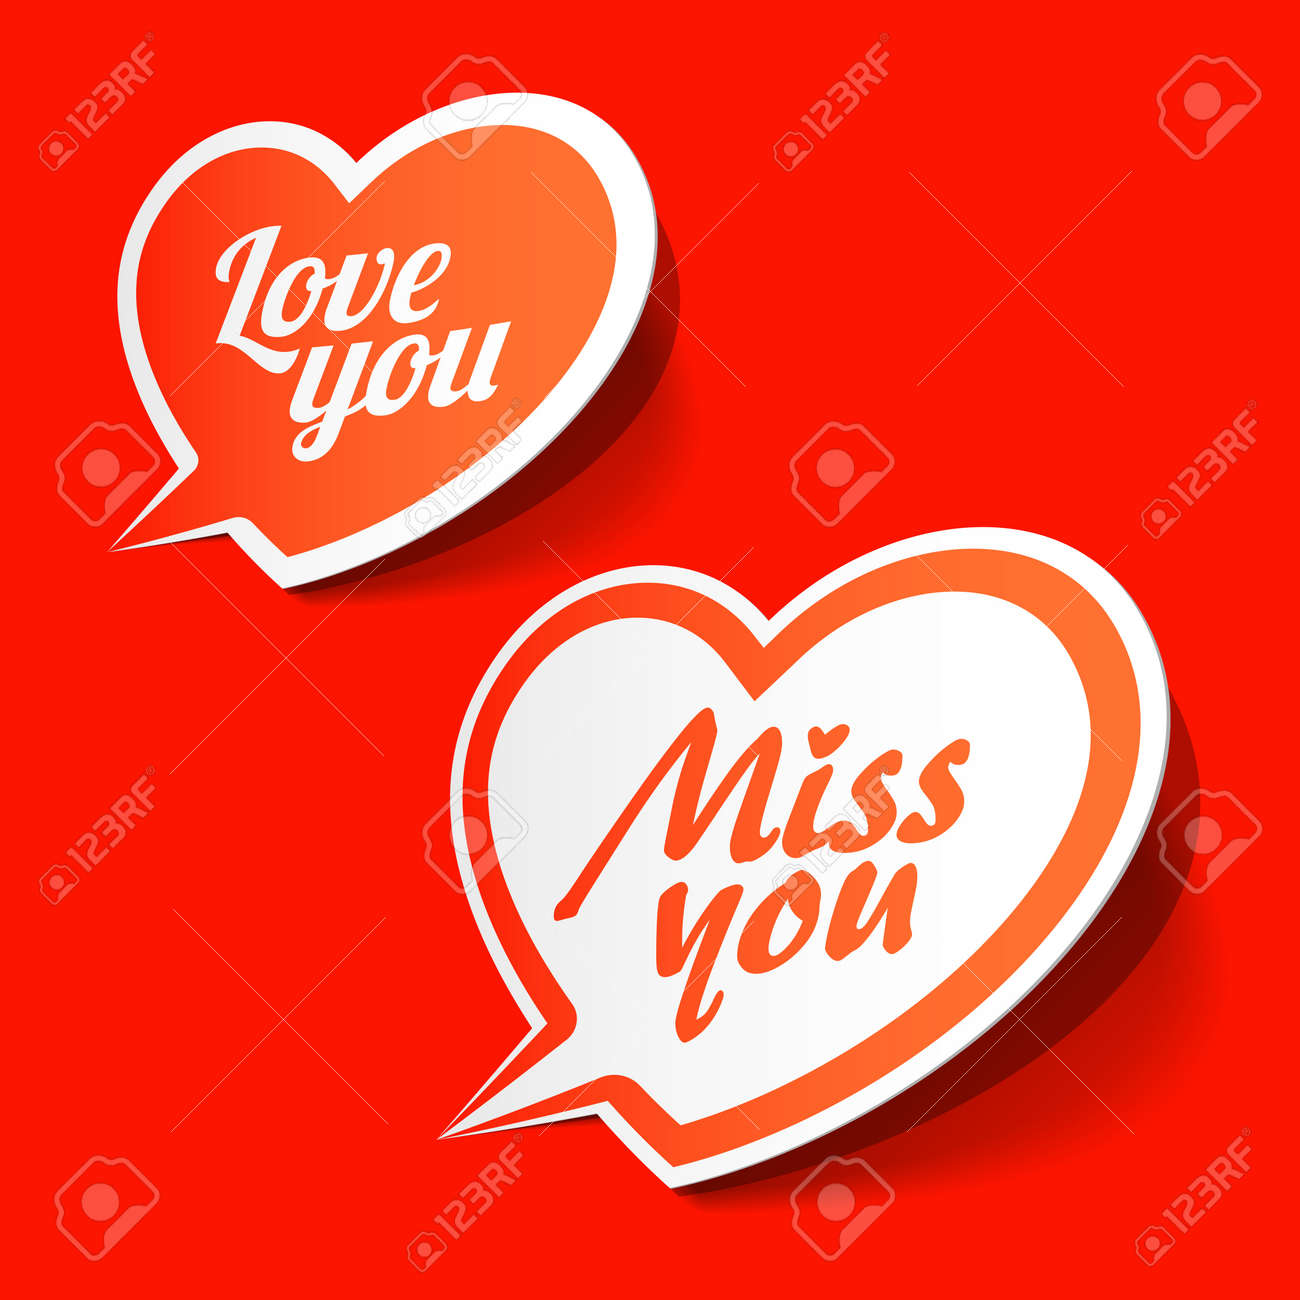 1 568 miss you cliparts stock vector and royalty free miss you rh 123rf com miss you clipart black and white miss you clipart black and white